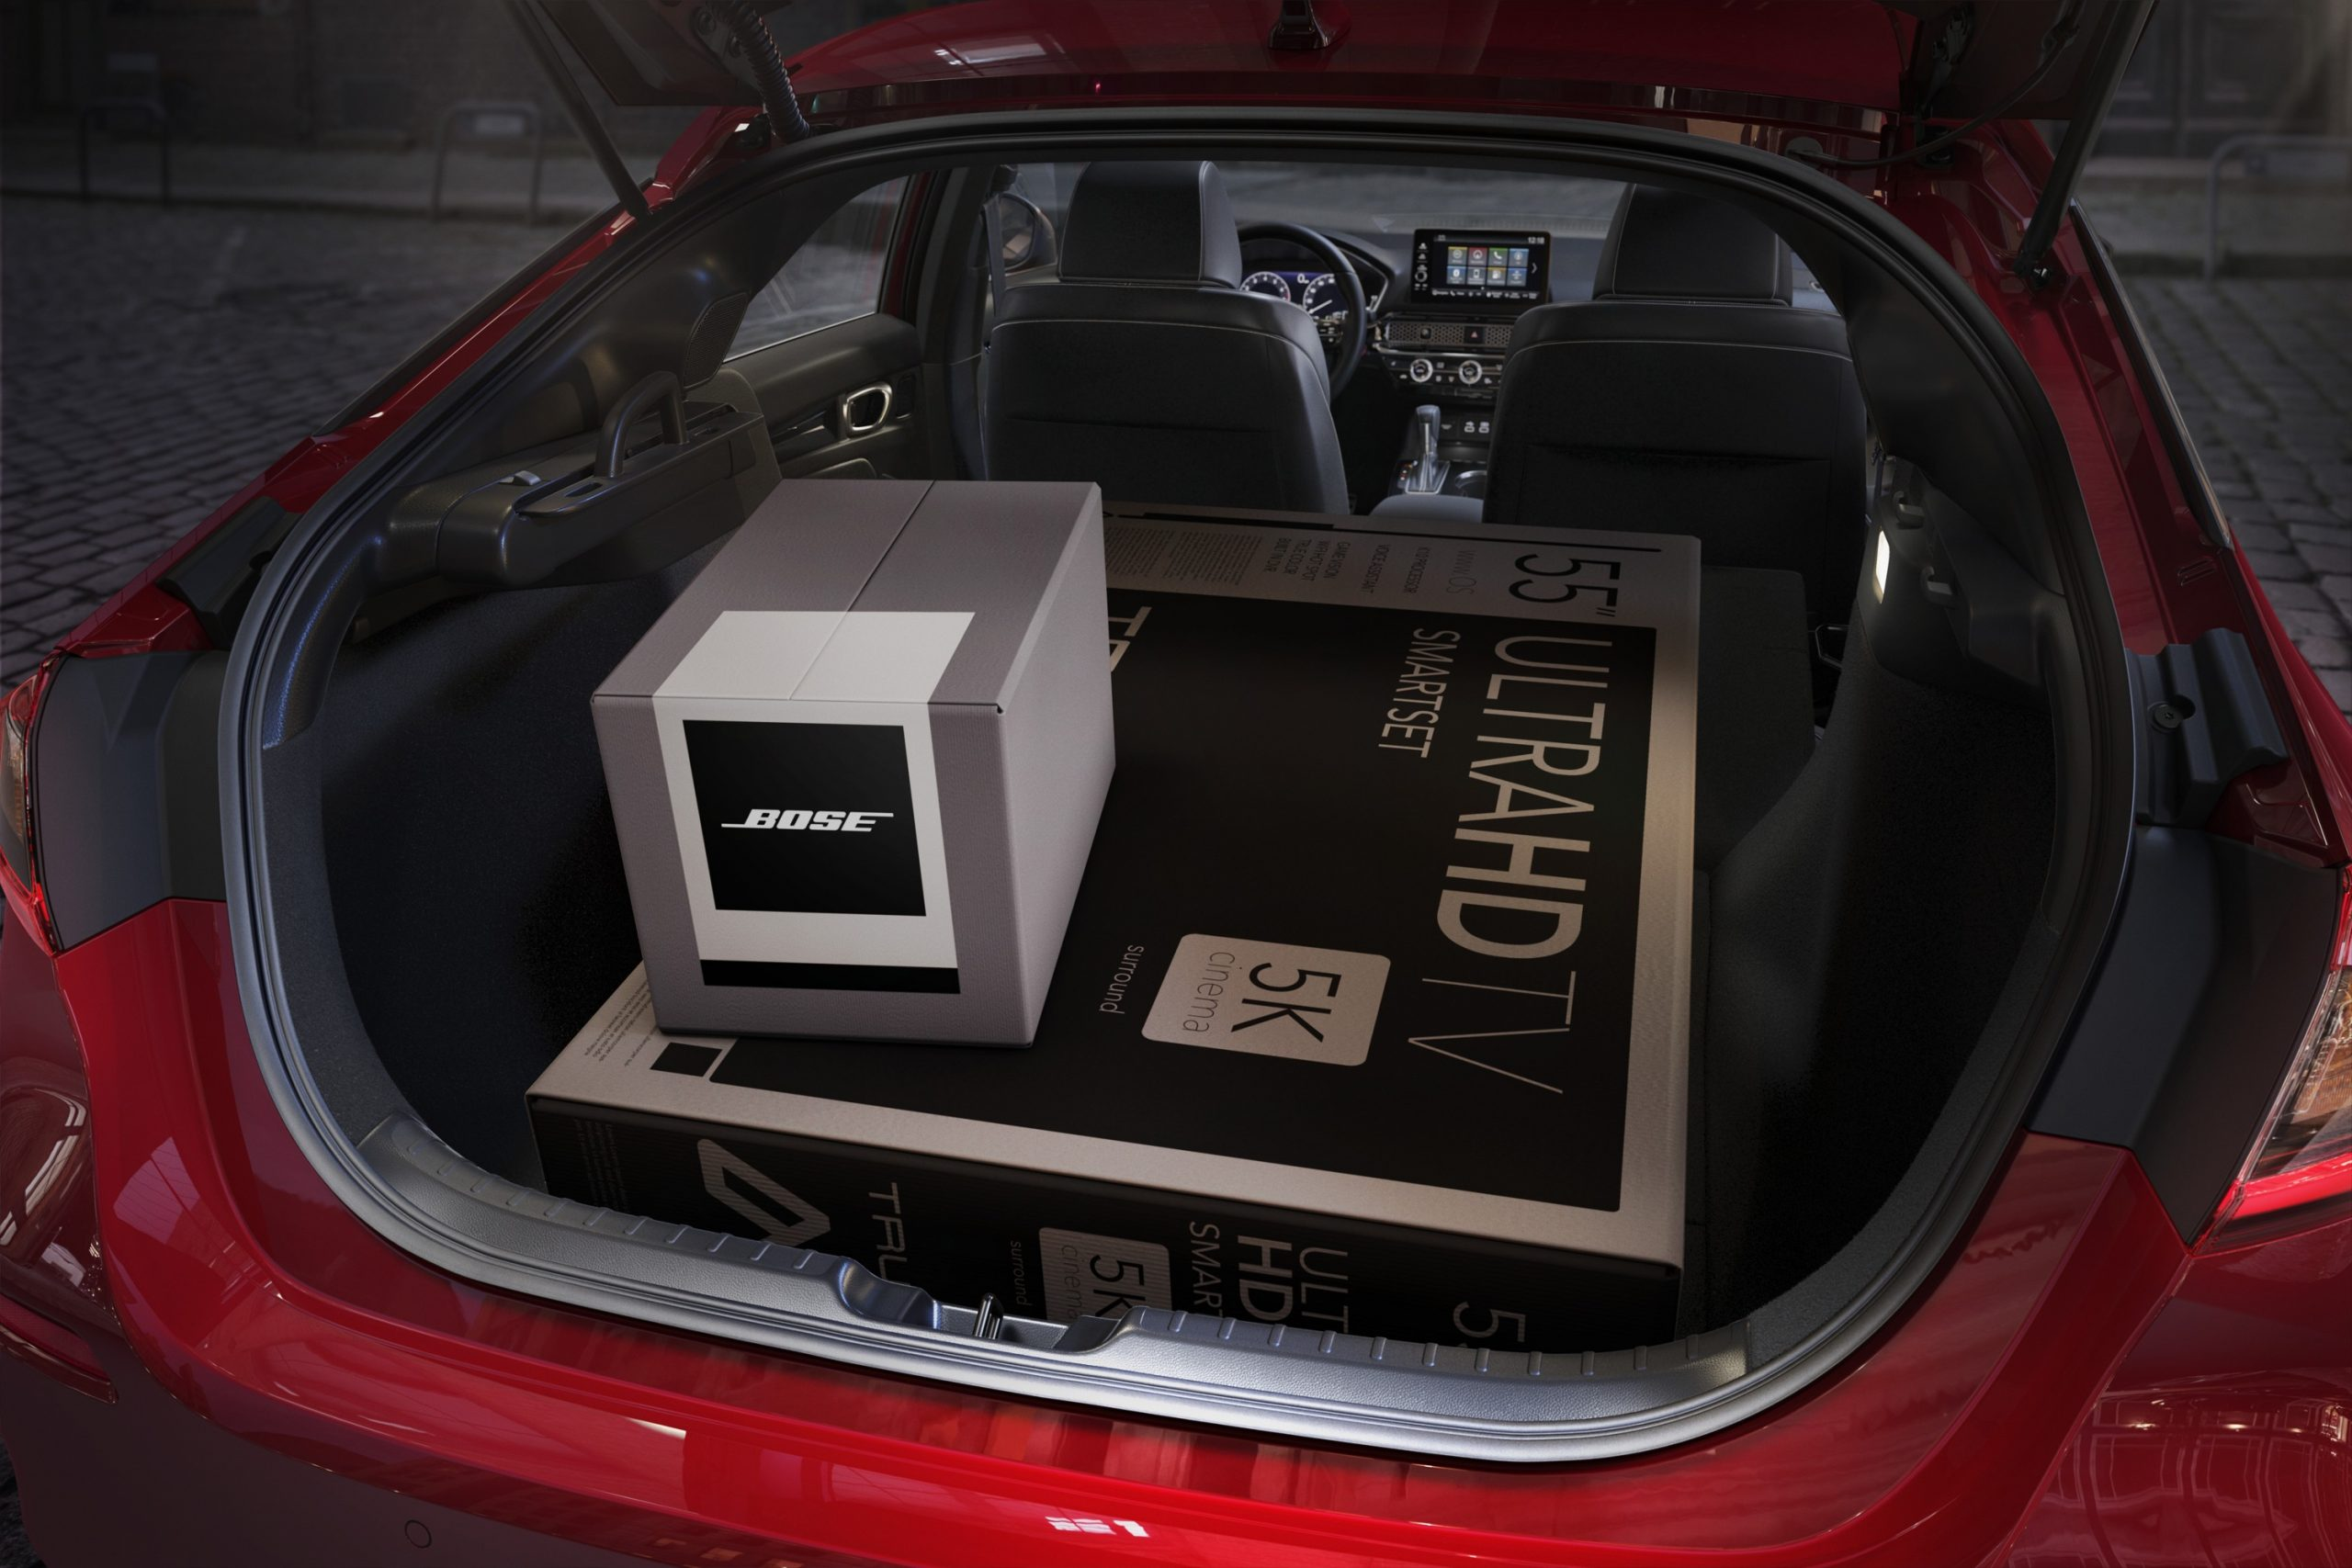 The cavernous rear hatch of the 2022 Honda Civic filled with a large TV and Bose speaker